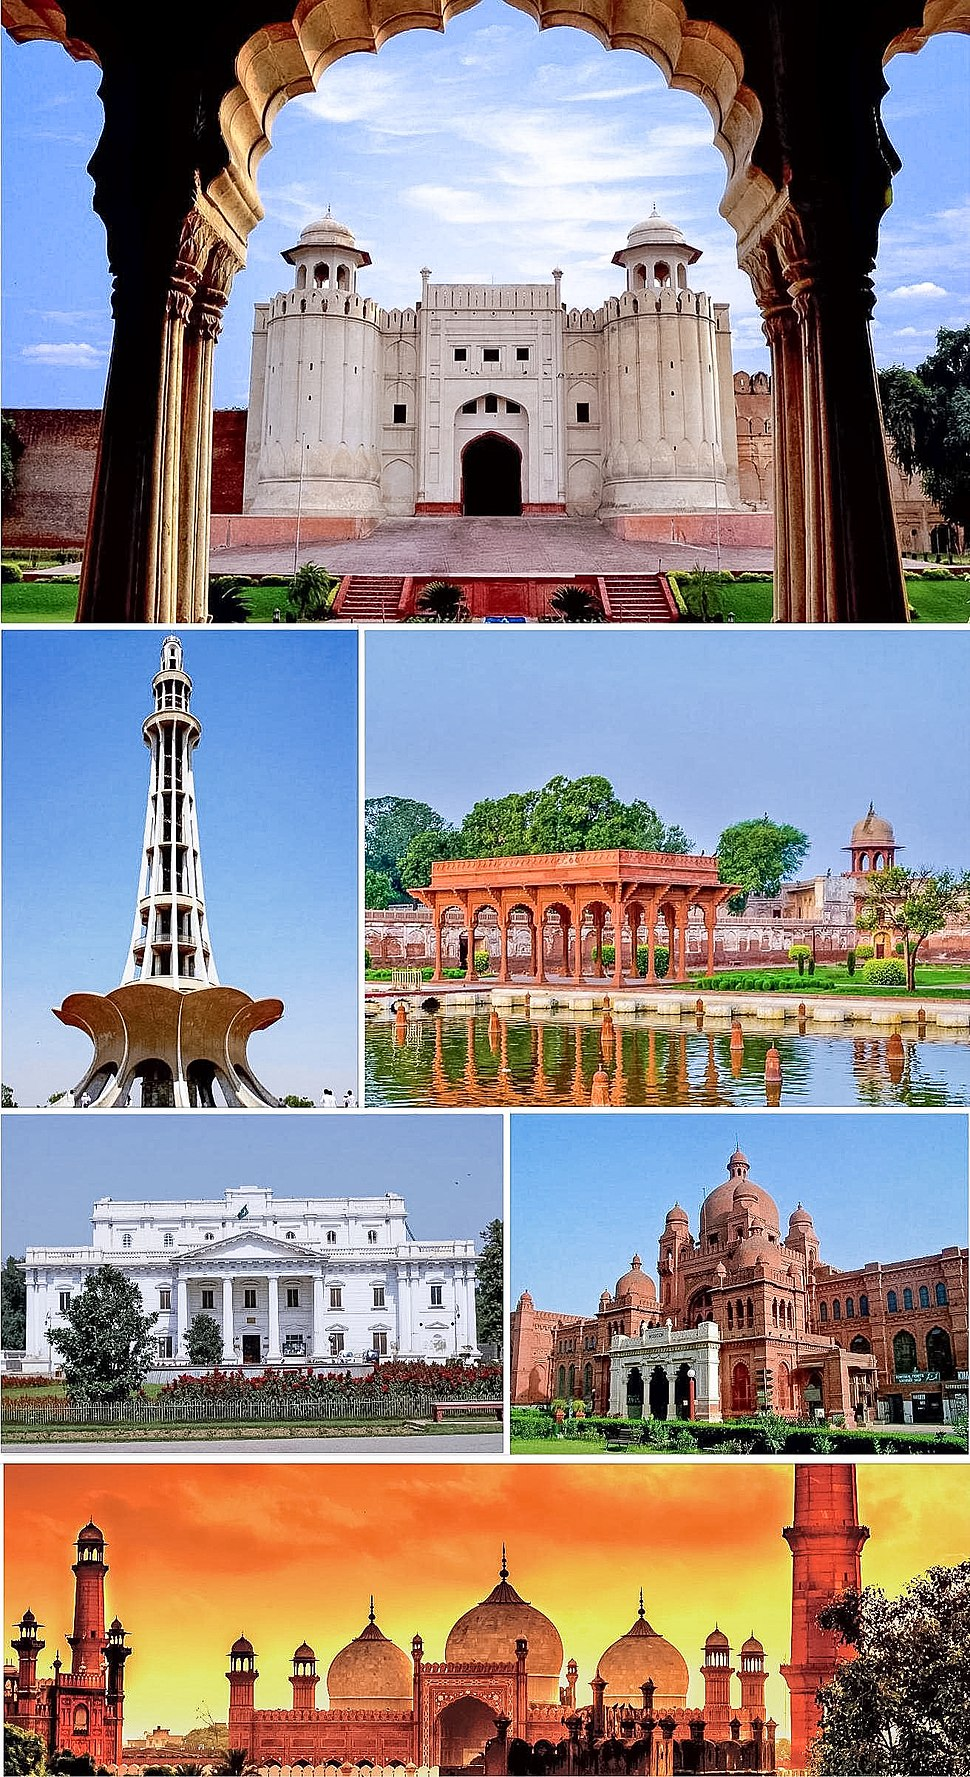 Clockwise from the top: Lahore Fort, Shalimar Gardens, Lahore Museum, Badshahi Mosque, Quaid-e-Azam Library, Minar-e-Pakistan.